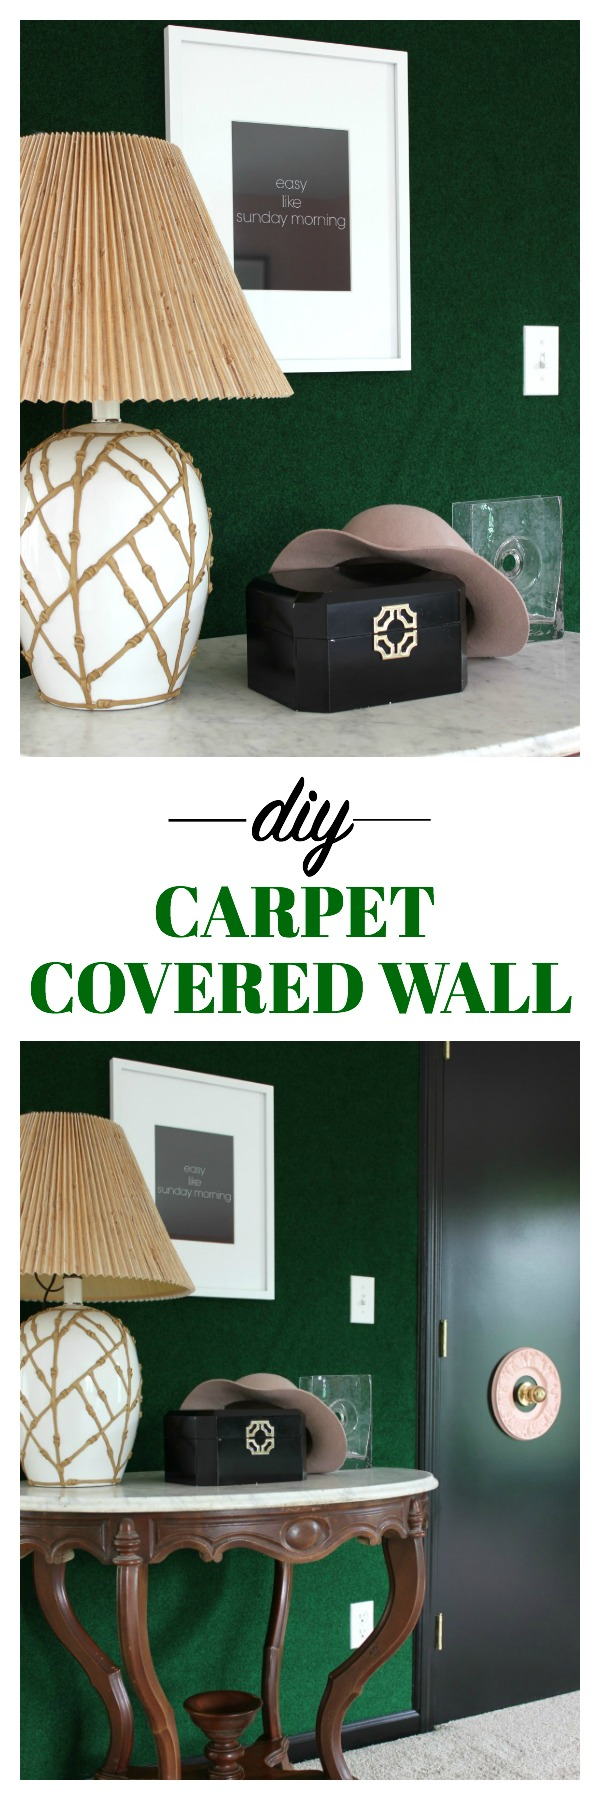 DIY Carpet Covered Wall | Accent Wall Ideas | DIY Feature Wall Ideas | Easy DIY Accent Wall | Astroturf Covered Wall